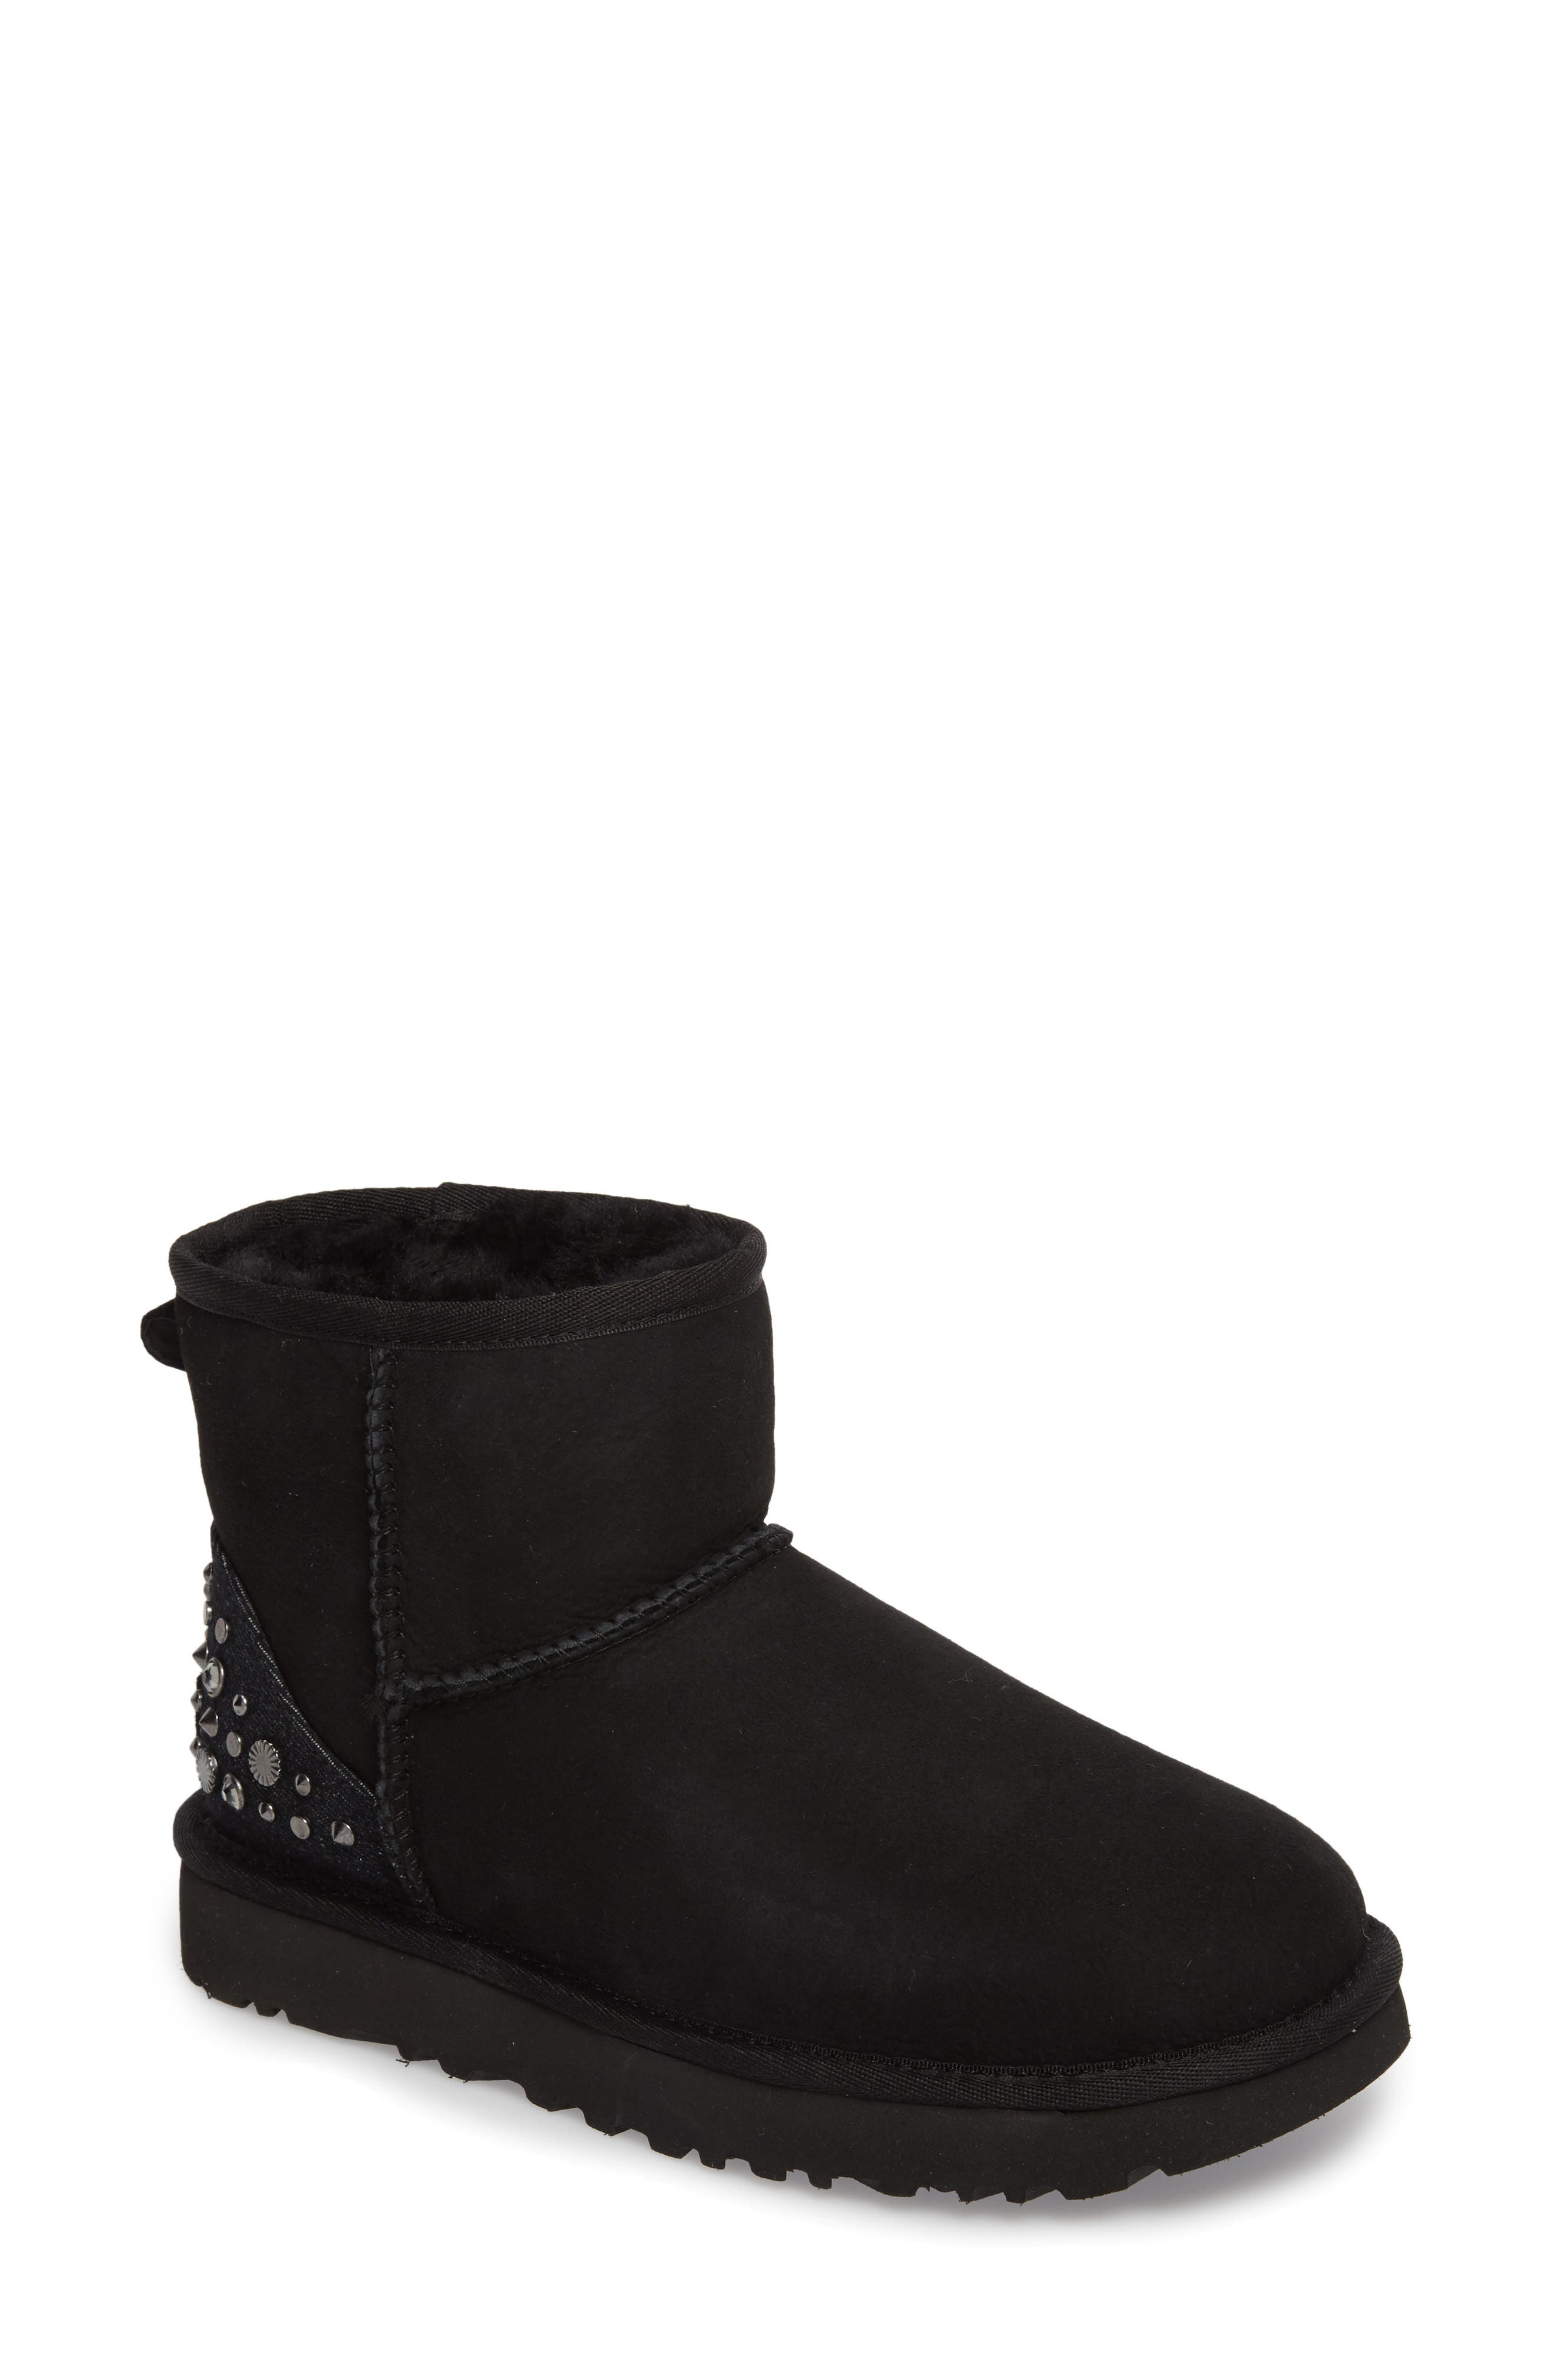 Alternate Image 1 Selected - UGG® Studded Mini Genuine Shearling Lined Boot (Women)